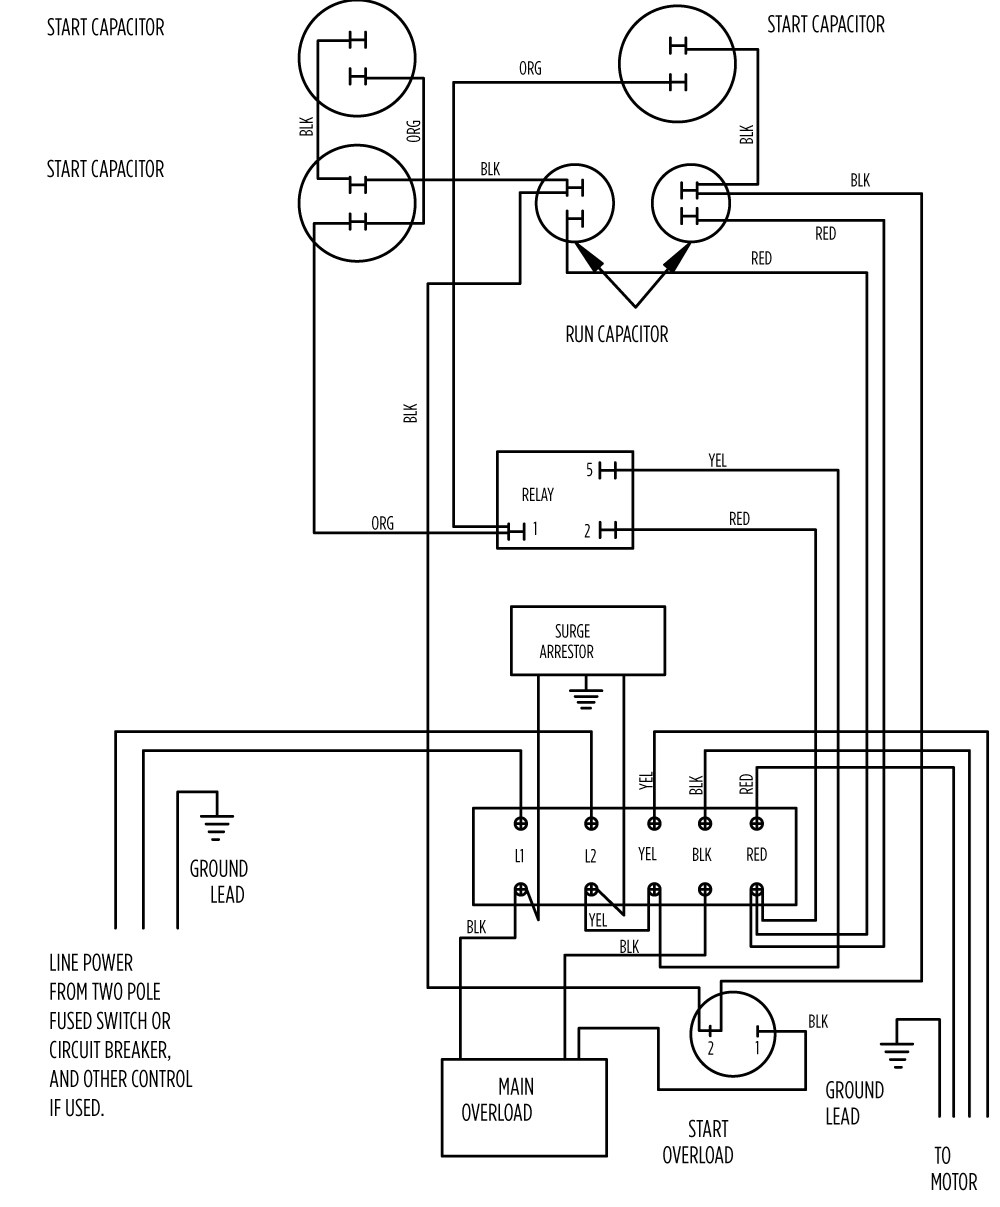 10 hp standard 282 202 9210 or 282 202 9230_aim gallery?format\\\=jpg\\\&quality\\\=80 franklin submersible pump wiring diagram wiring diagram online